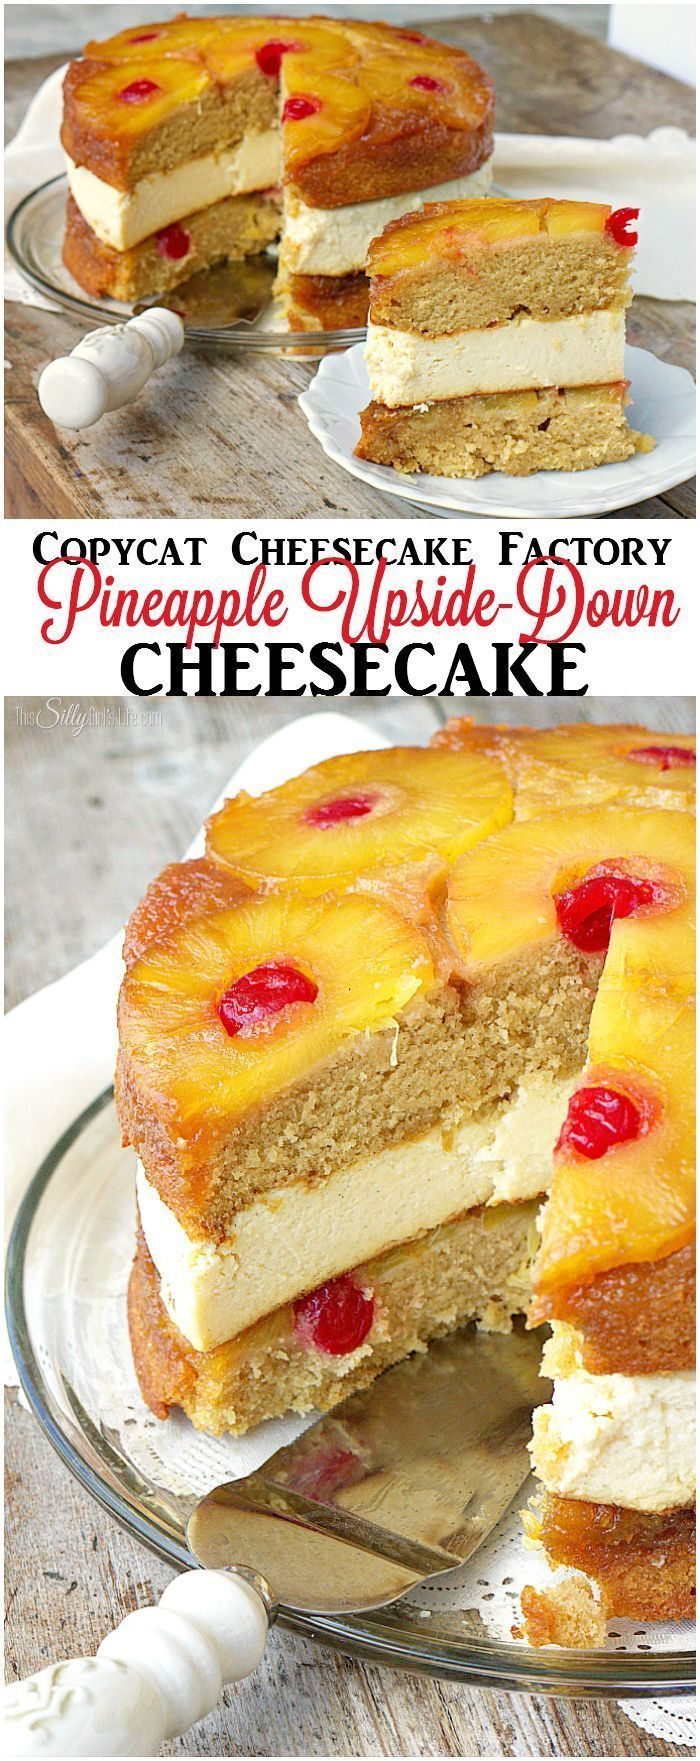 Cheesecake Copycat Cheesecake Factory Pineapple Upside-Down Cheesecake, two layers of buttery pineapple upside-down cake stuffed with pineapple cheesecake, just like the restaurant... but homemade! - Copycat Cheesecake Factory Pineapple Upside-Down Cheesecake, two layers of buttery pineapple upside...